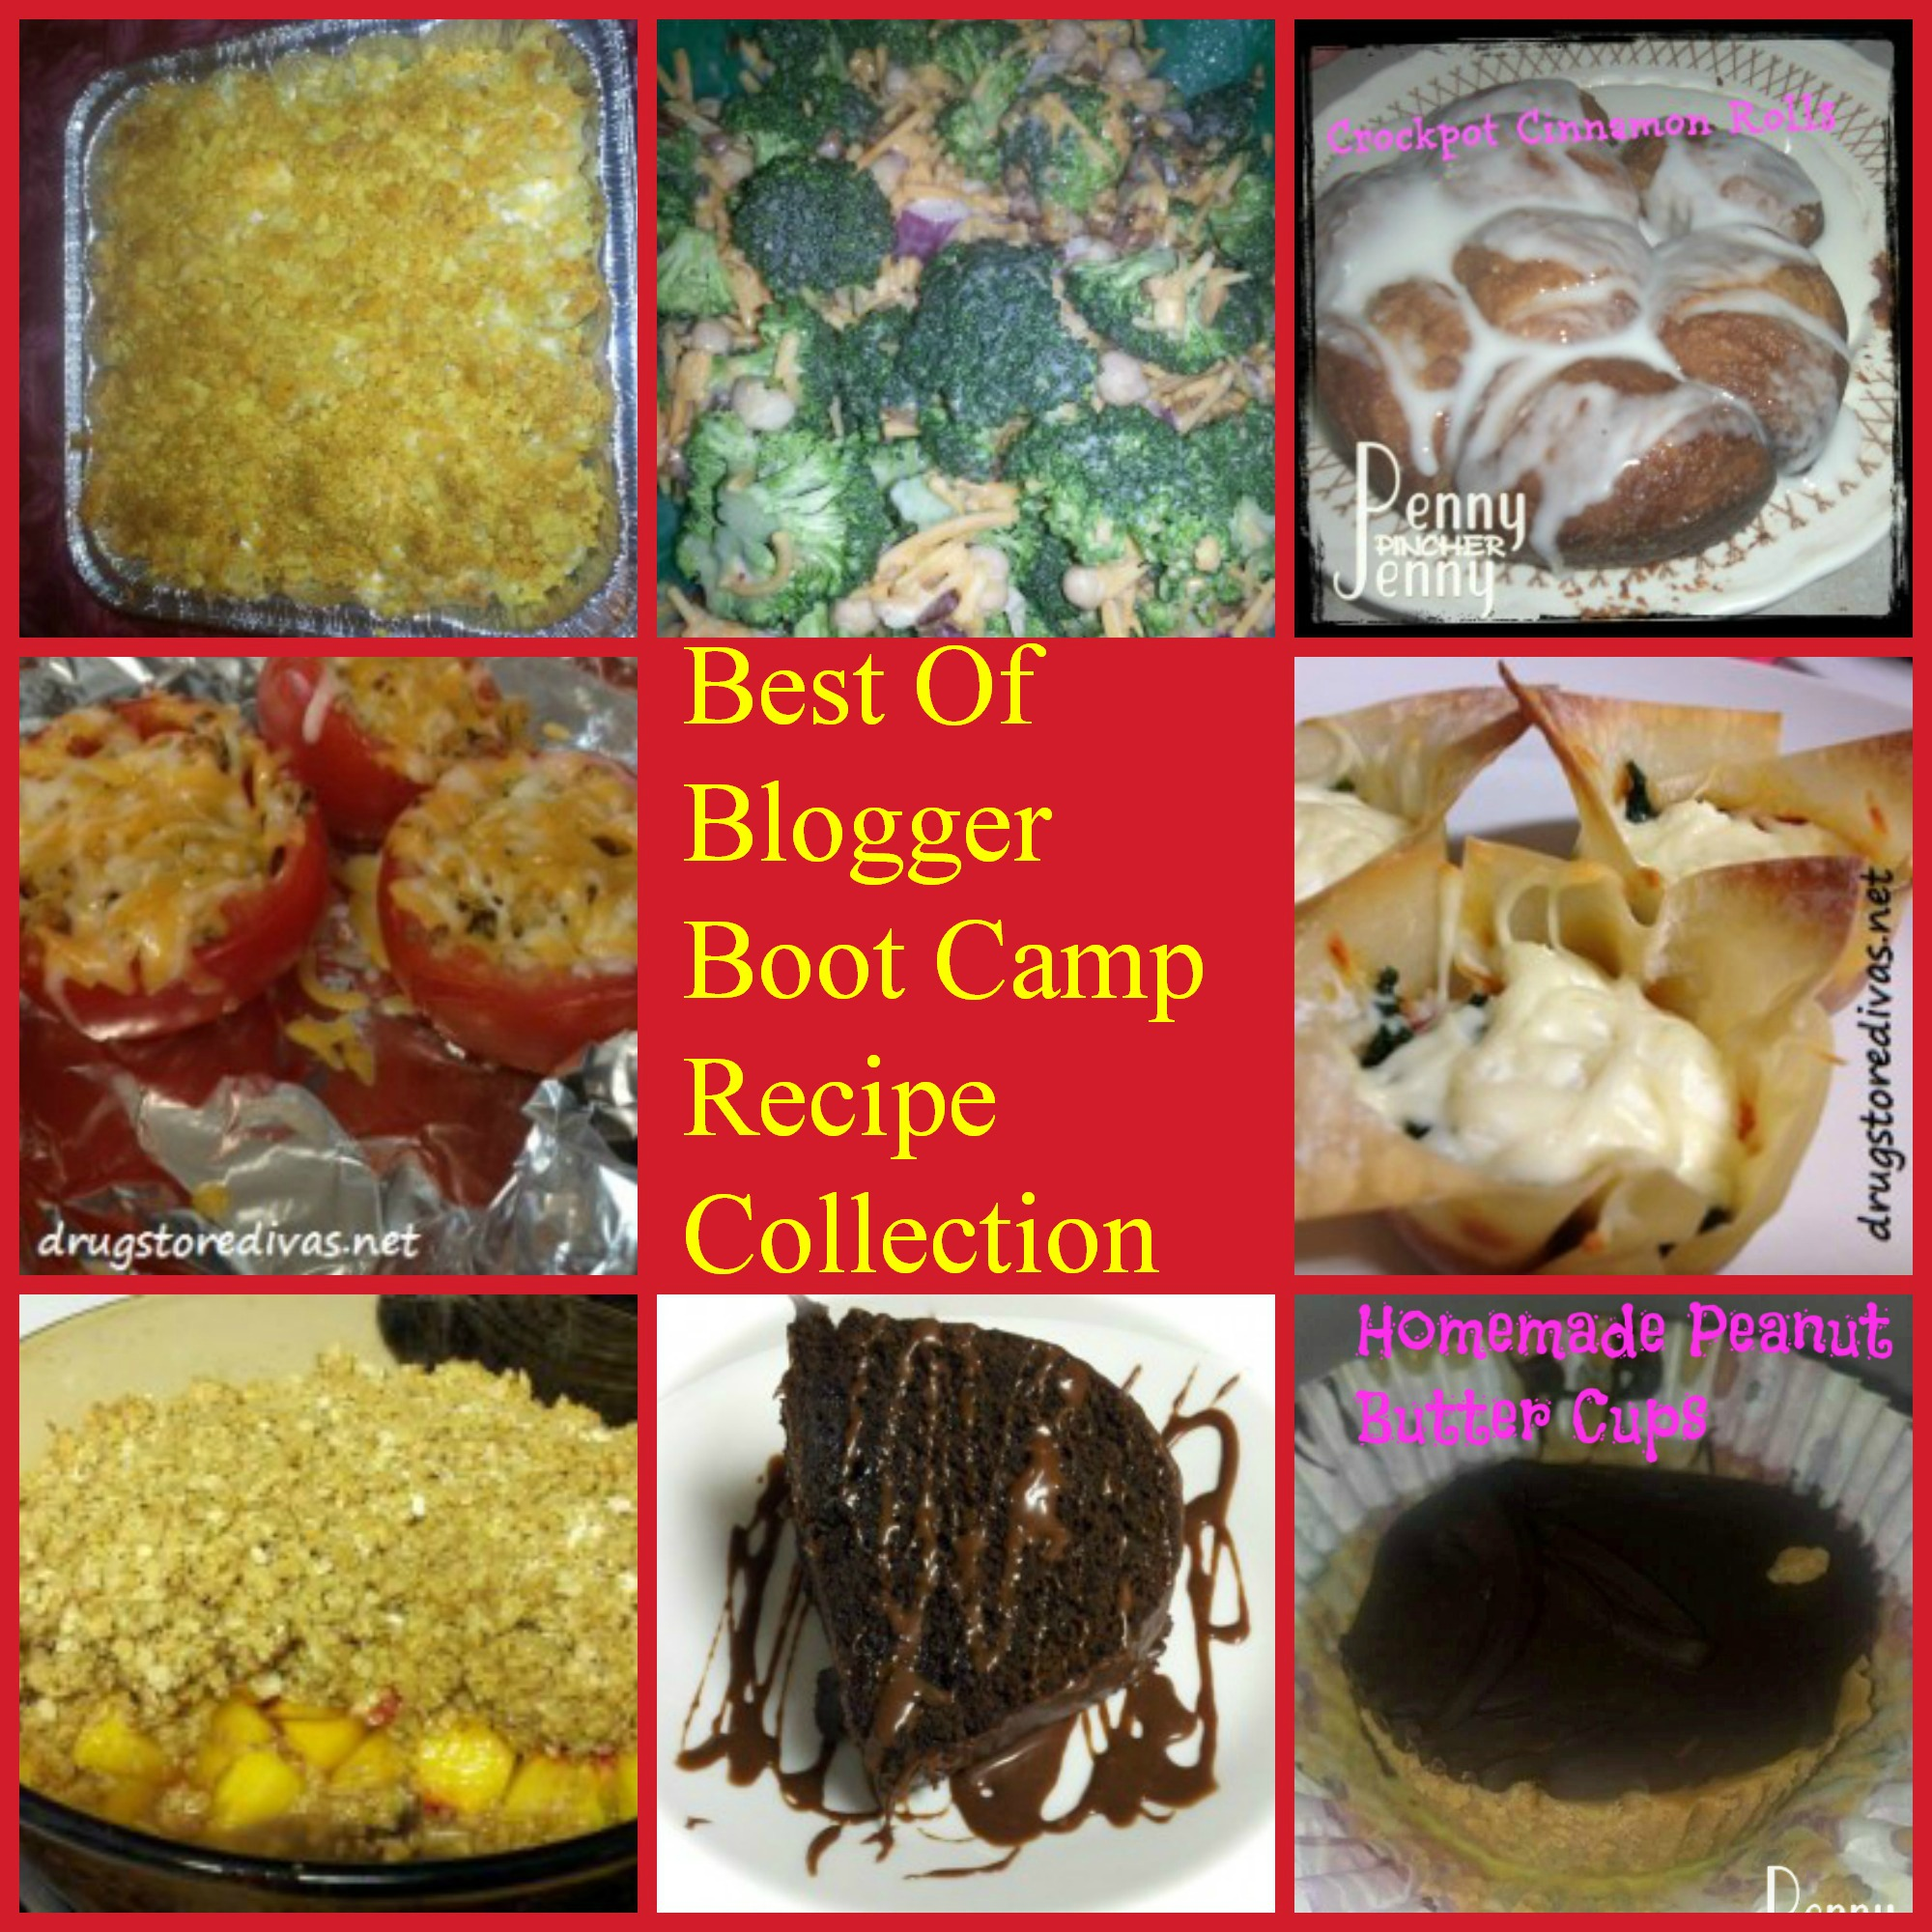 Recipe Collection The Best of From #BloggerBootCamp!